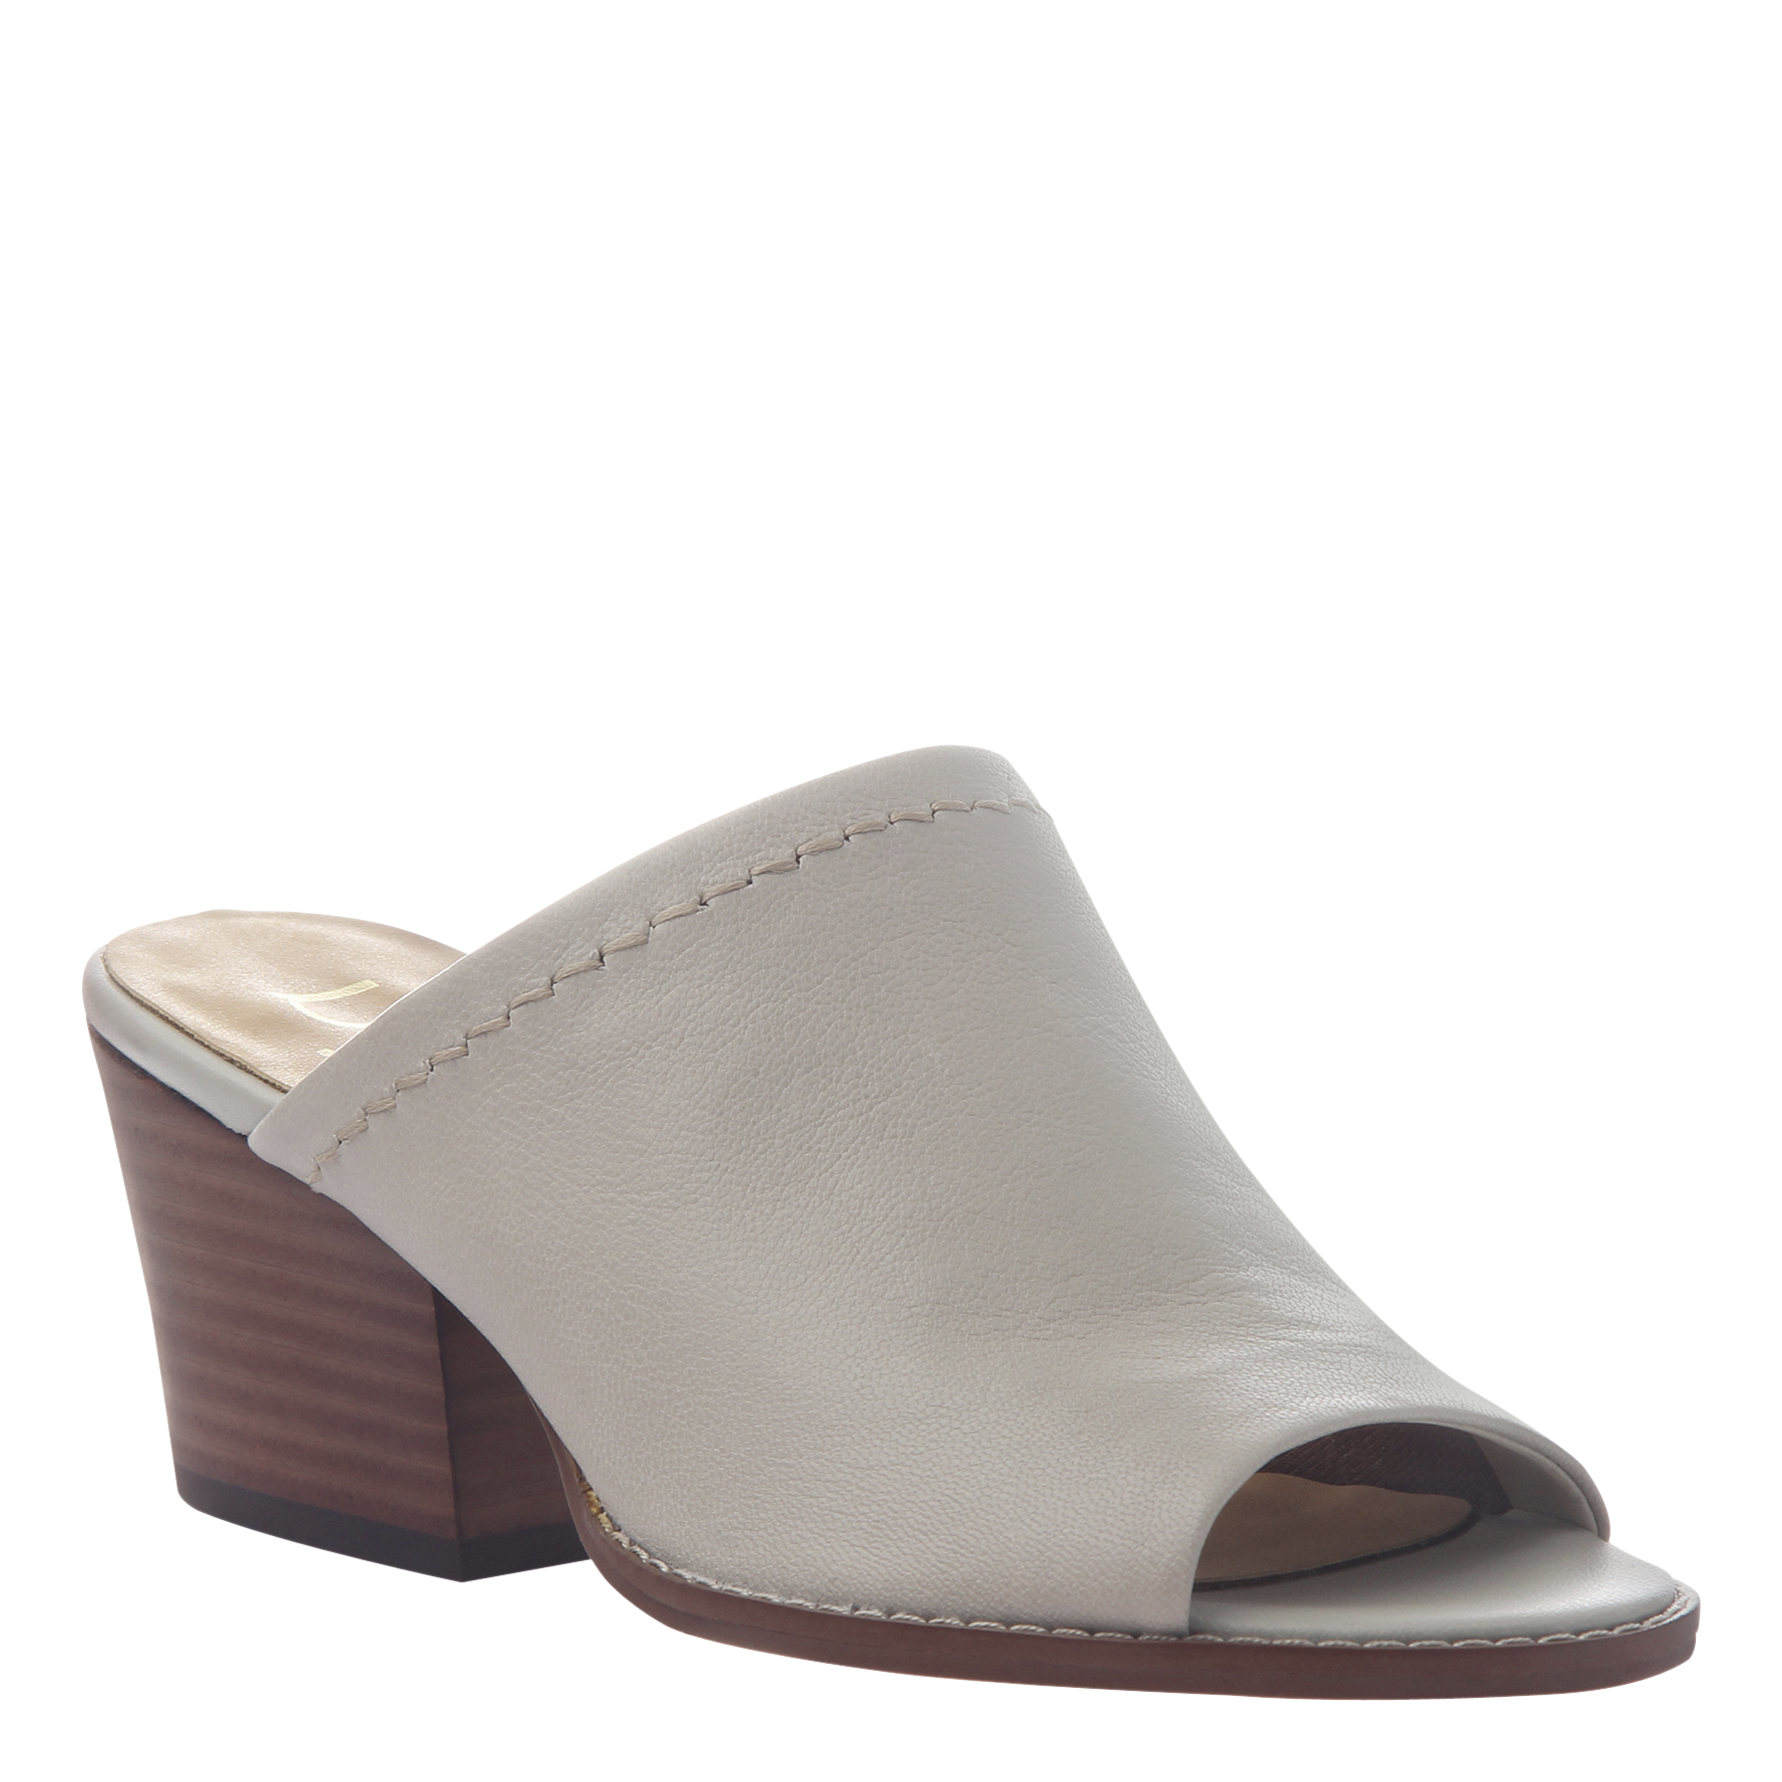 Womens mule slide Carolina in steel